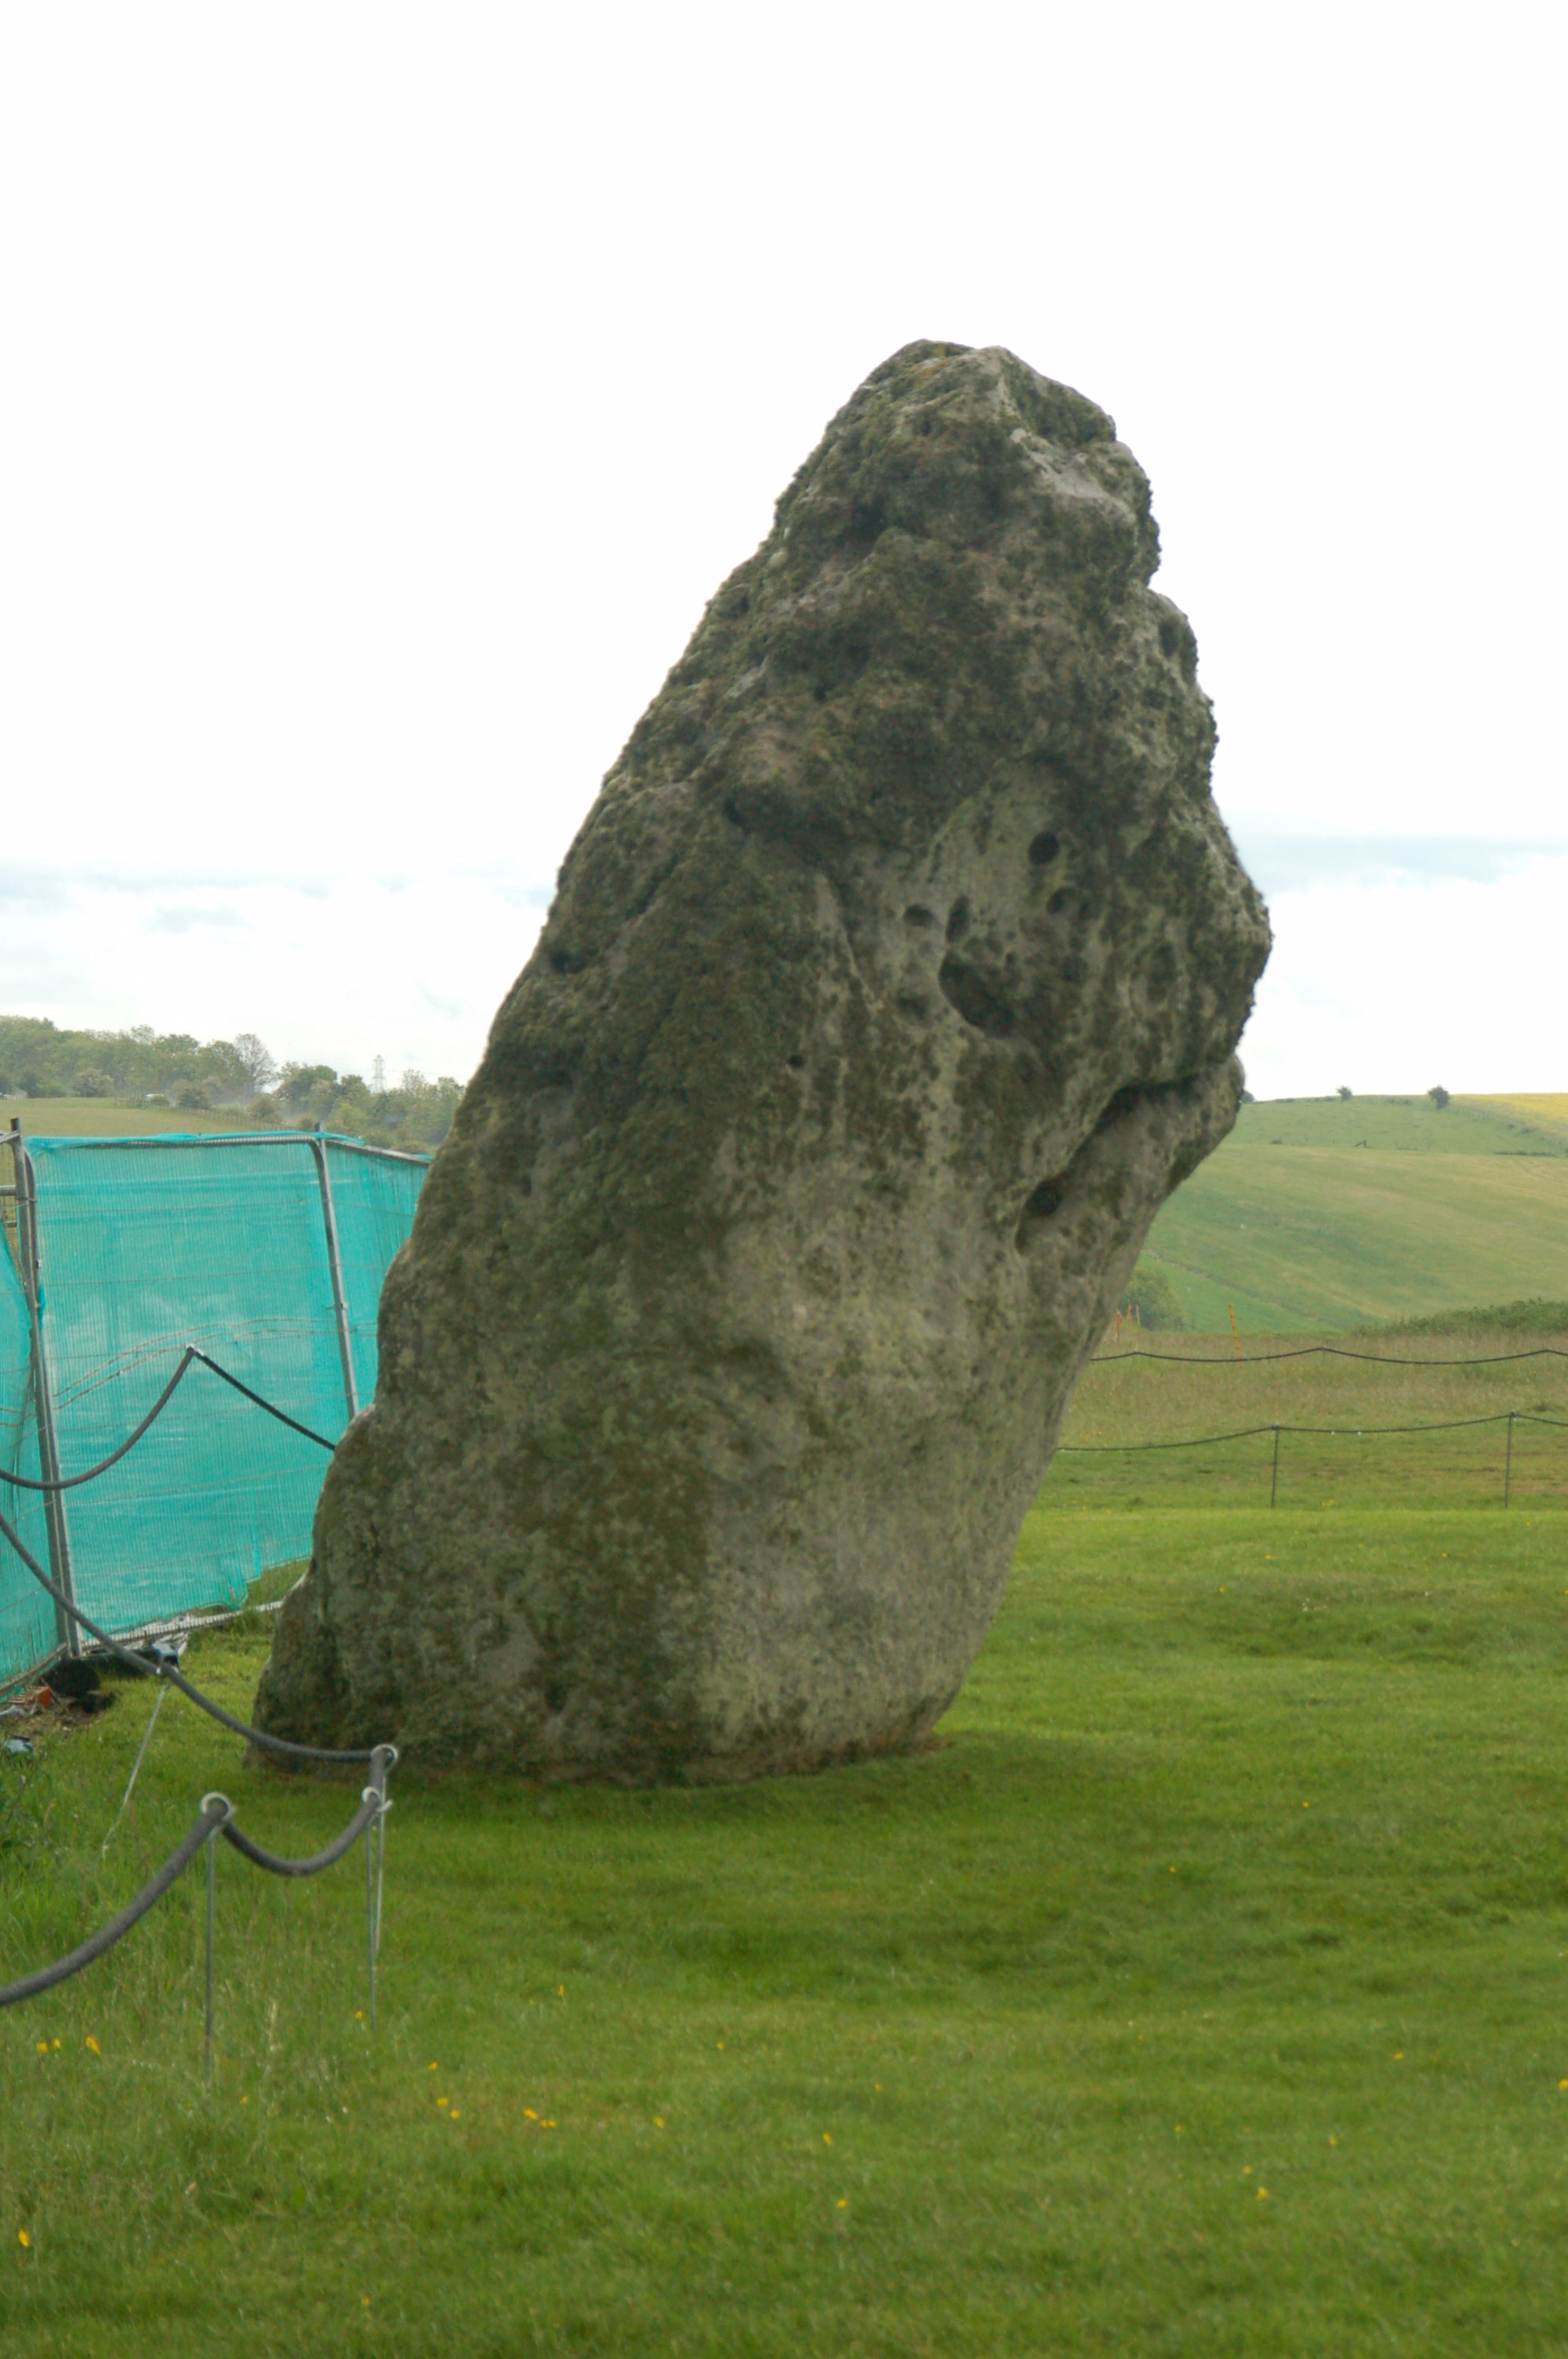 a study of stonehenge Stonehenge, prehistoric stone circle monument, cemetery, and archaeological site located on salisbury plain, about 8 miles (13 km) north of salisbury, wiltshire,.